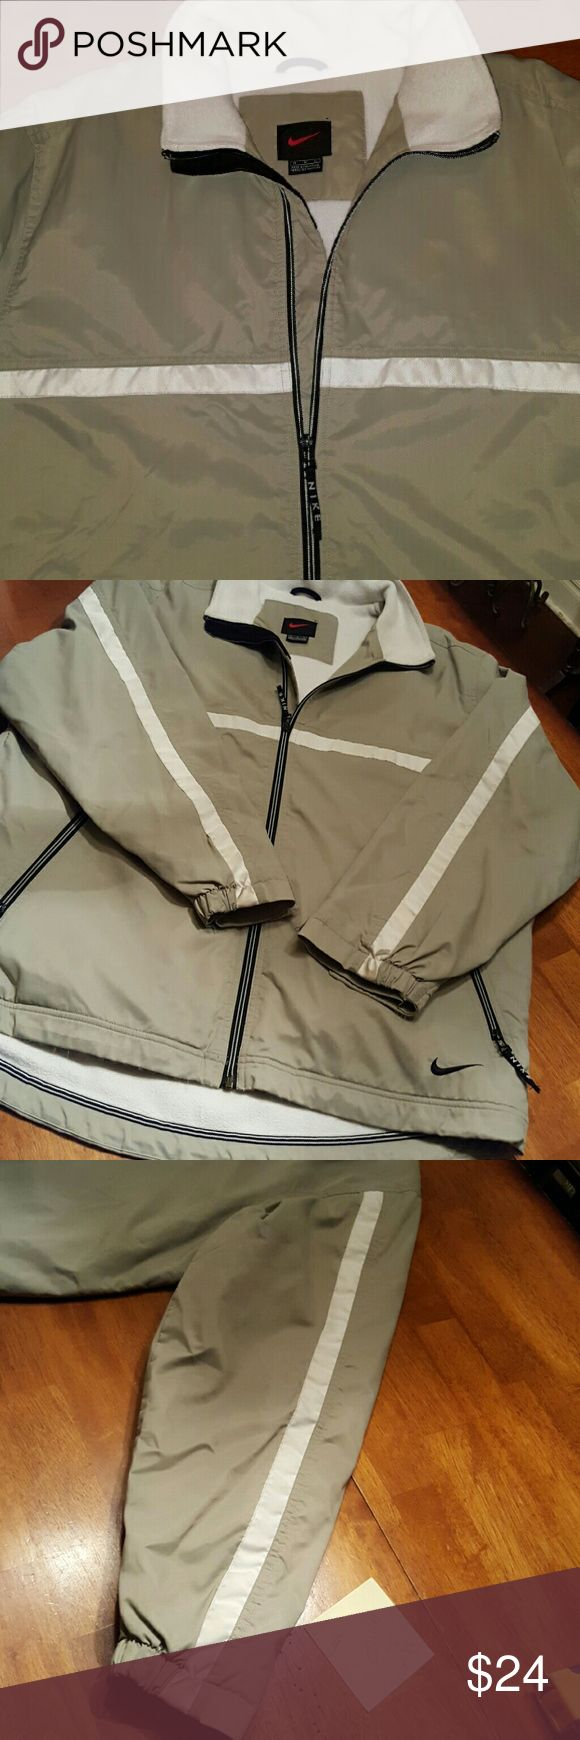 MEN'S NIKE LAB LINED JACKET Nike men's windbreaker style jacket.  It has a nylon wind resistant outer shell and a white pile lined inside with nylon lined sleeves. Zippered outer pockets.  Black Nike Swoosh.  Inside velcro closure pocket.  Great condition. Gently worn,  from a clean non smoking home.  No odors,  rips,  stains or tears. Quality jacket,  great for golf or any outdoor activity.  Guaranteed to keep you warm on a blustery day. Nike  Jackets & Coats